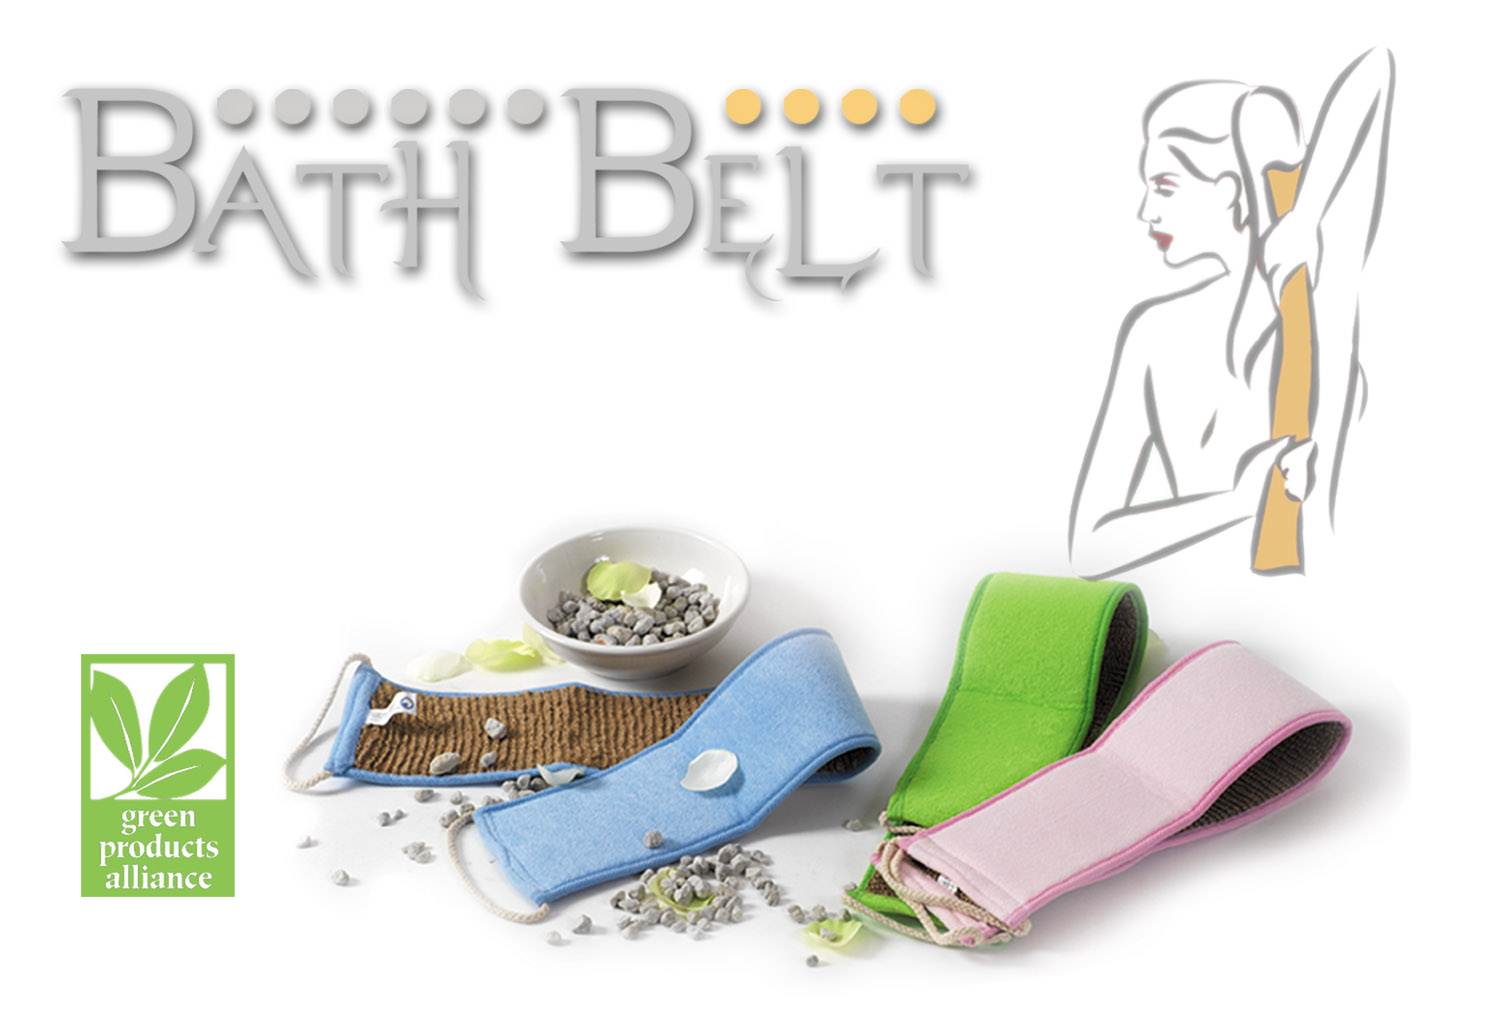 BATH BELT HOME